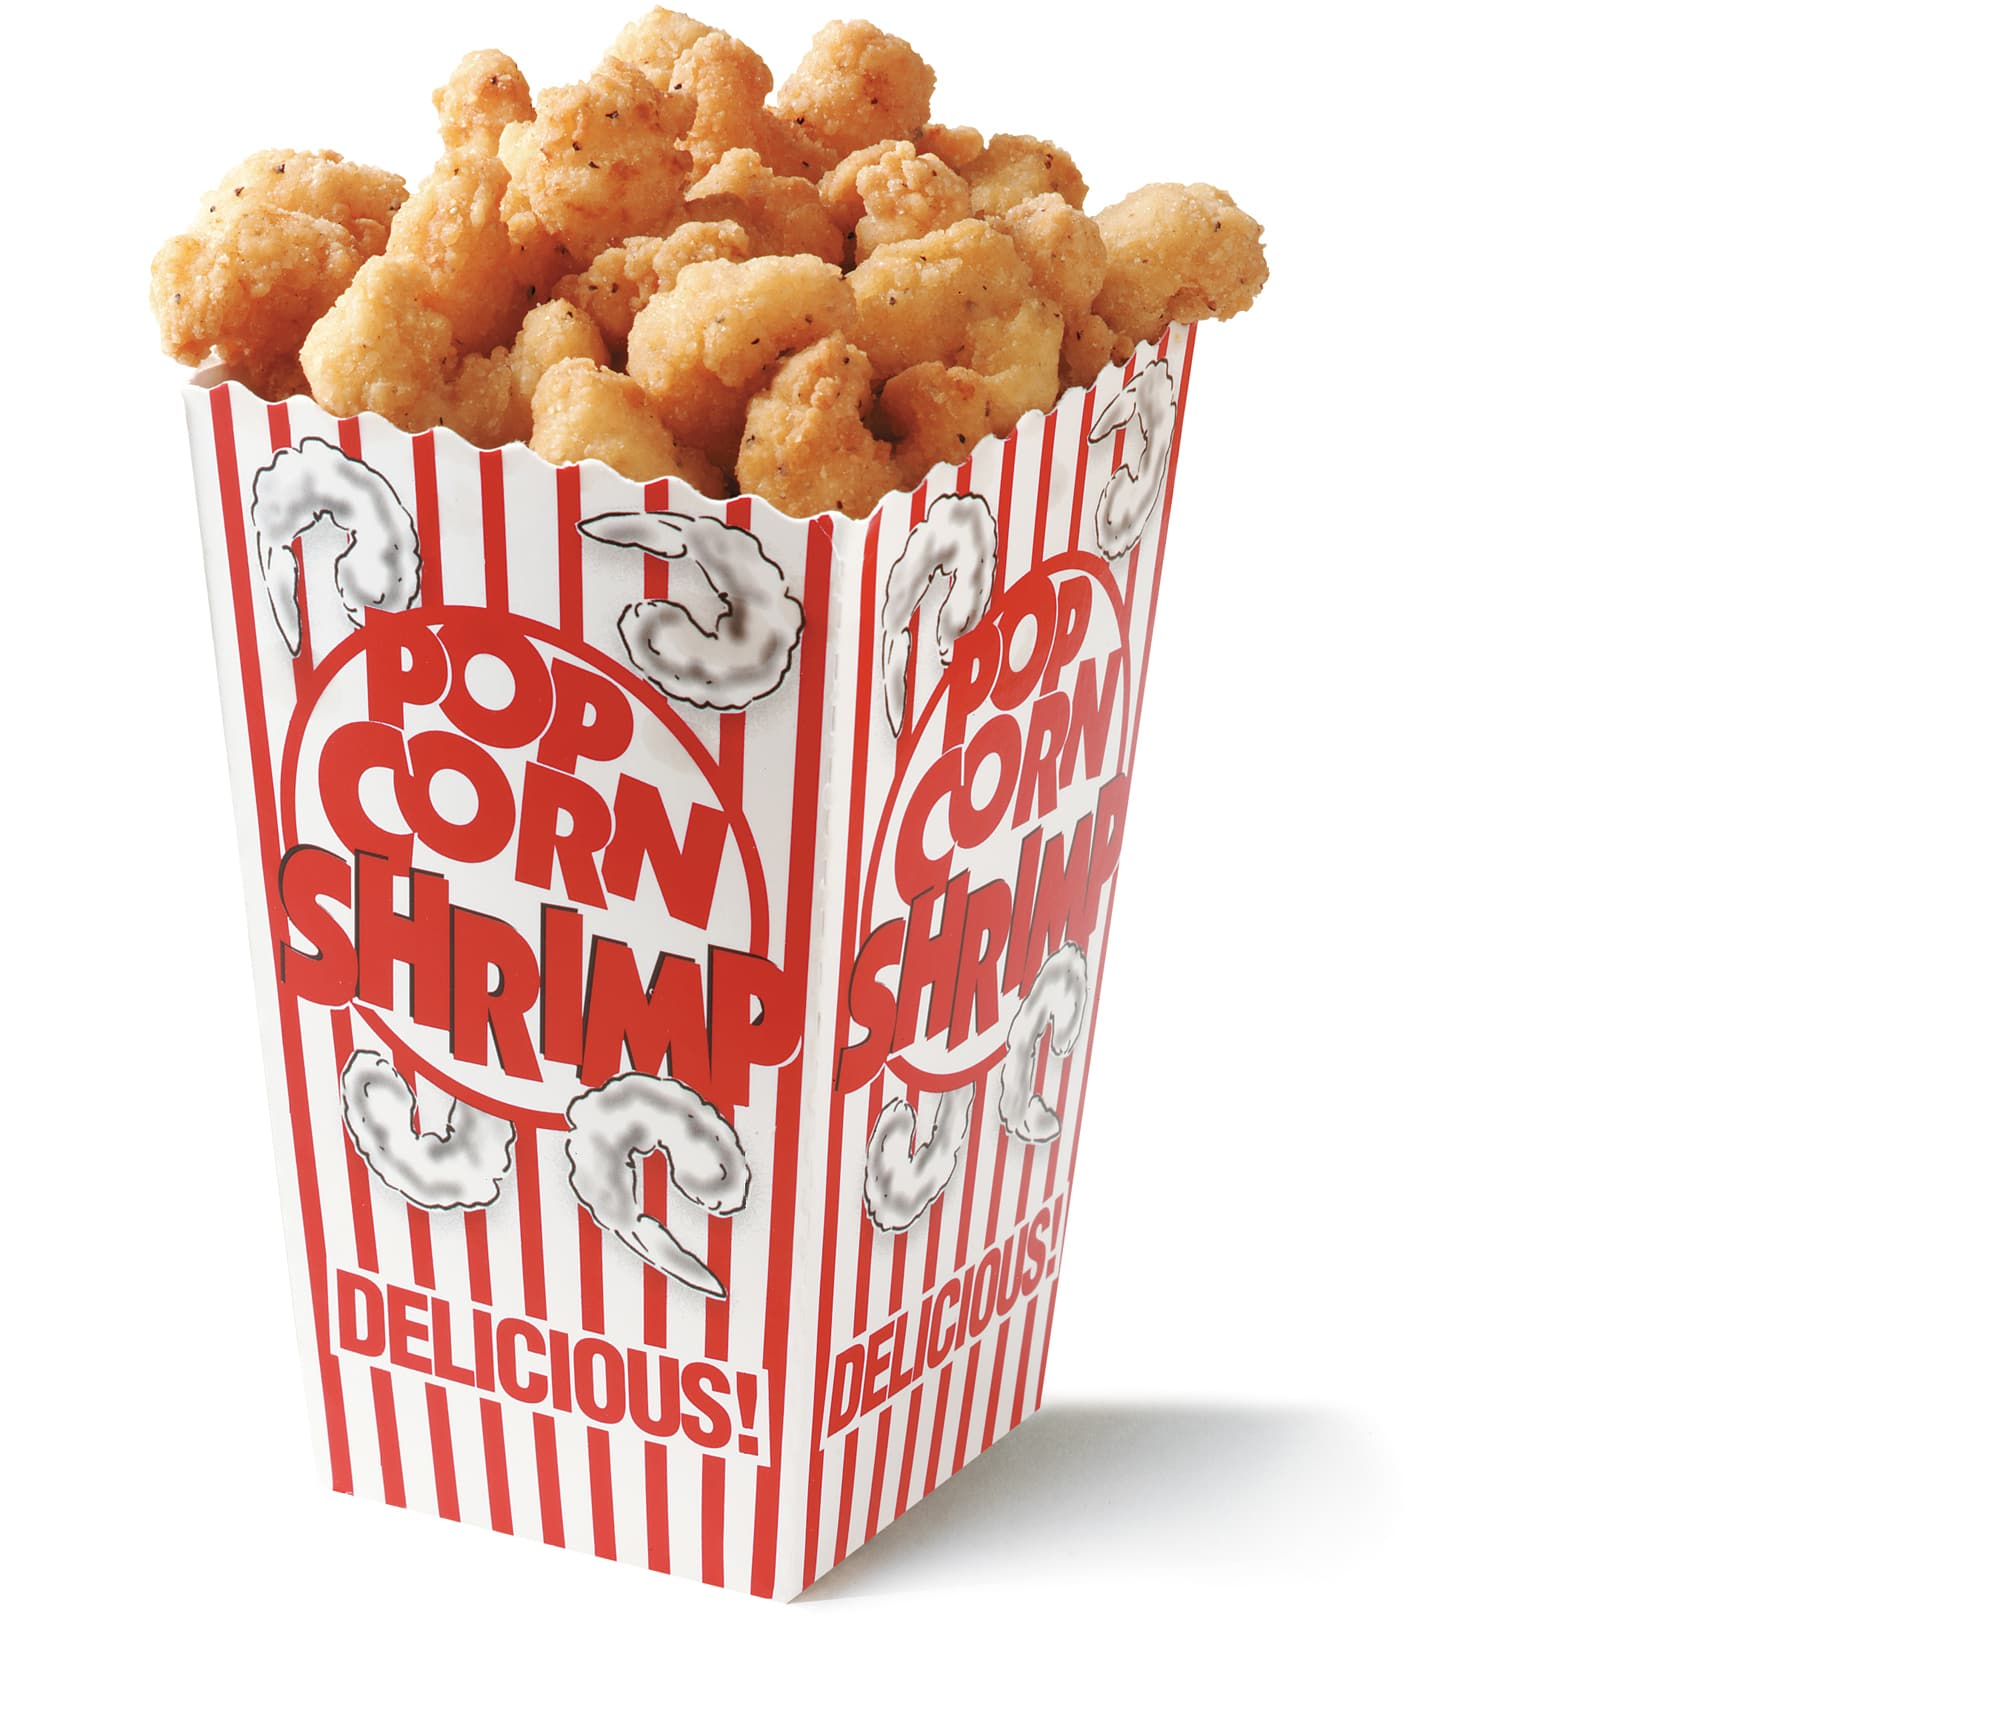 Crunchy Breaded Popcorn Shrimp 60 90 Ct King And Prince